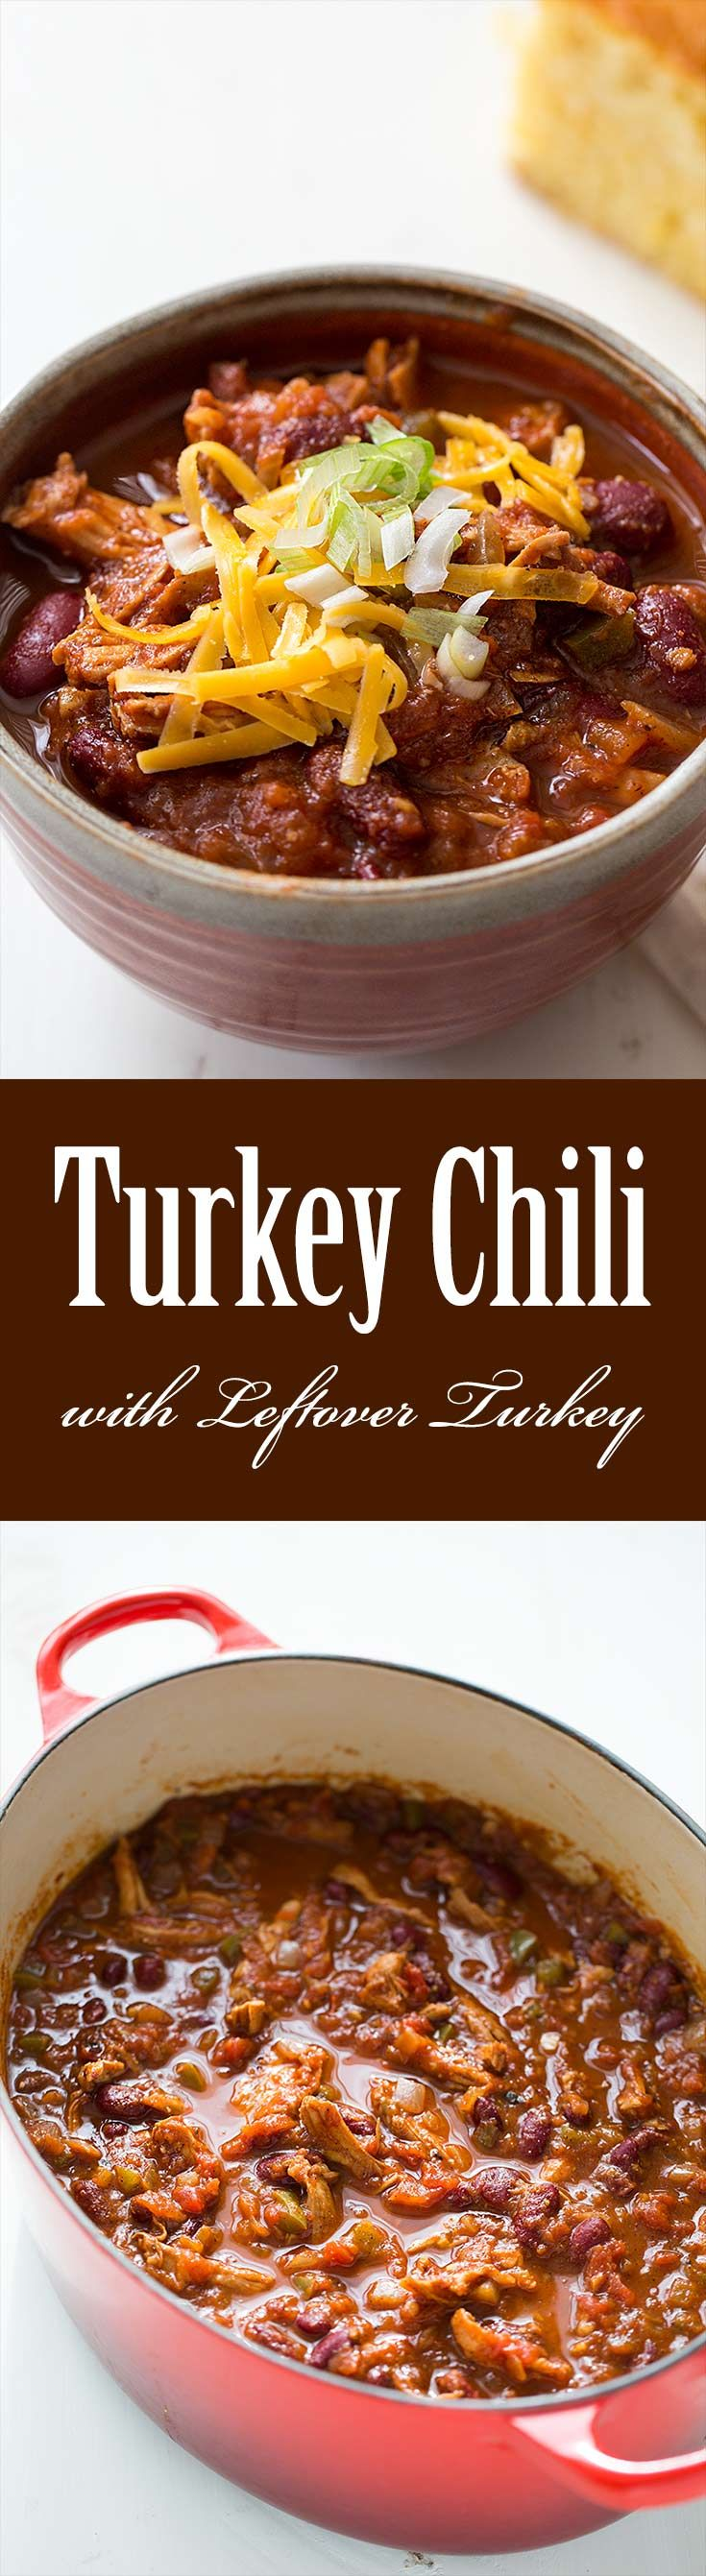 Photo of Turkey Chili {Hearty & Delicious} | SimplyRecipes.com